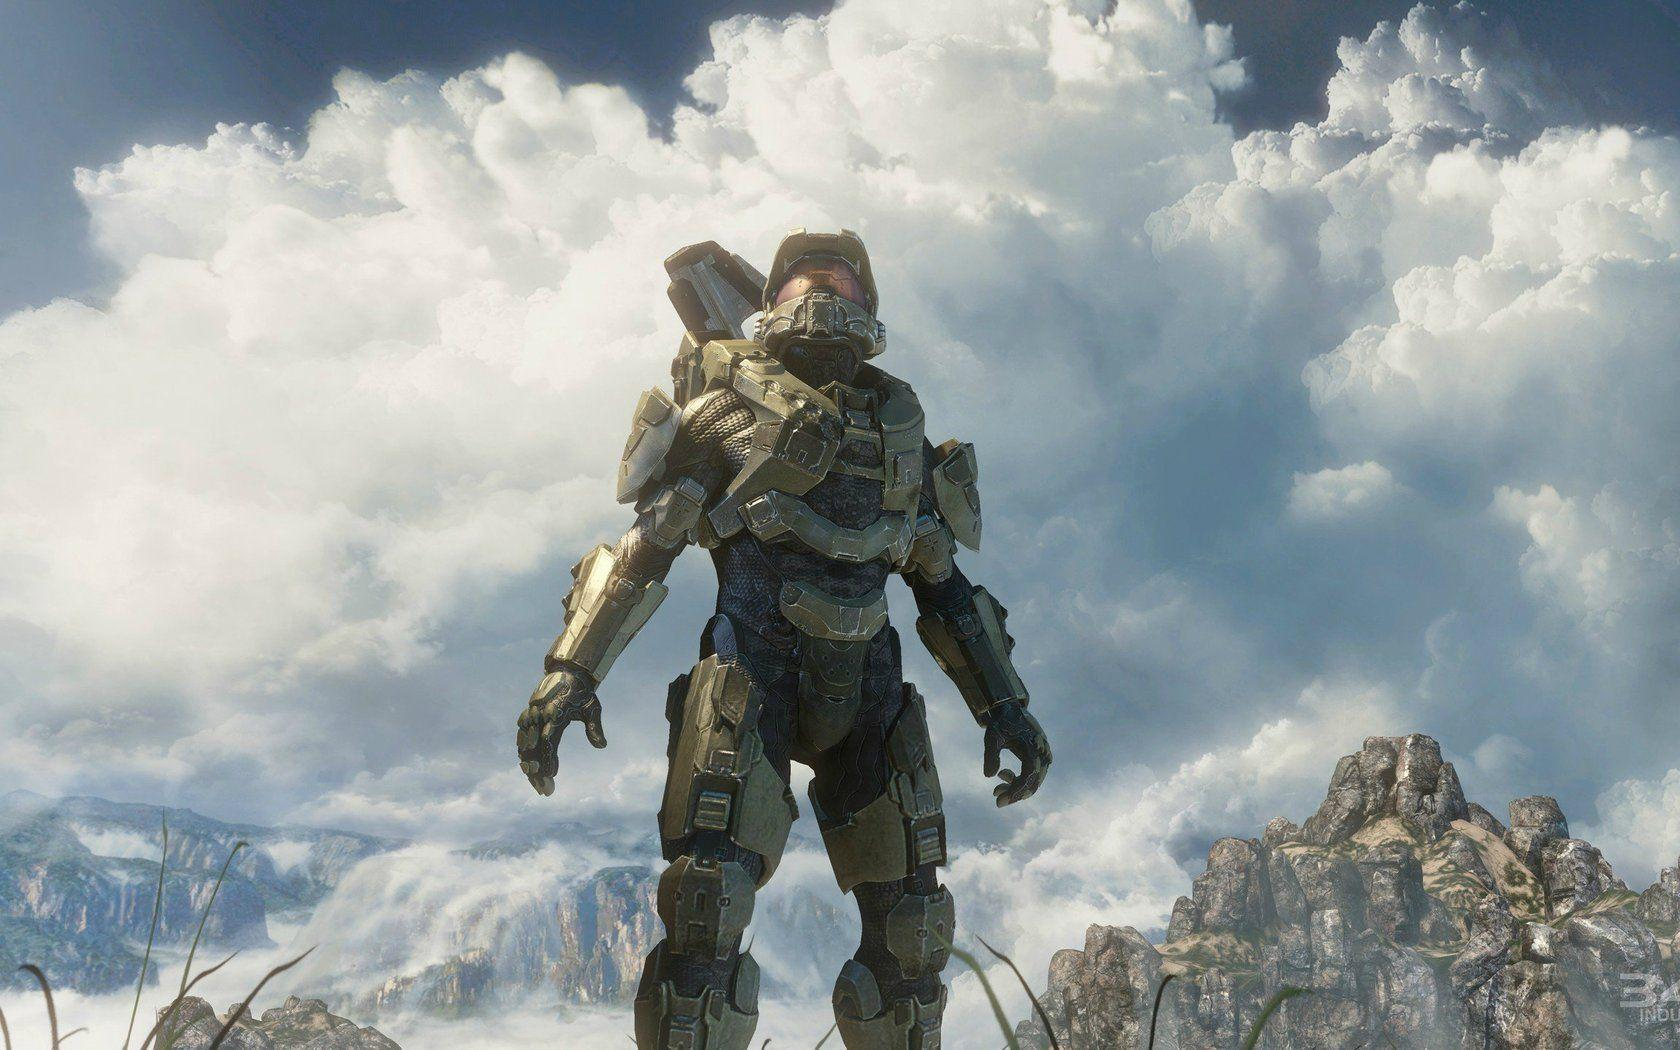 Halo 4 Hd Wallpapers and Backgrounds